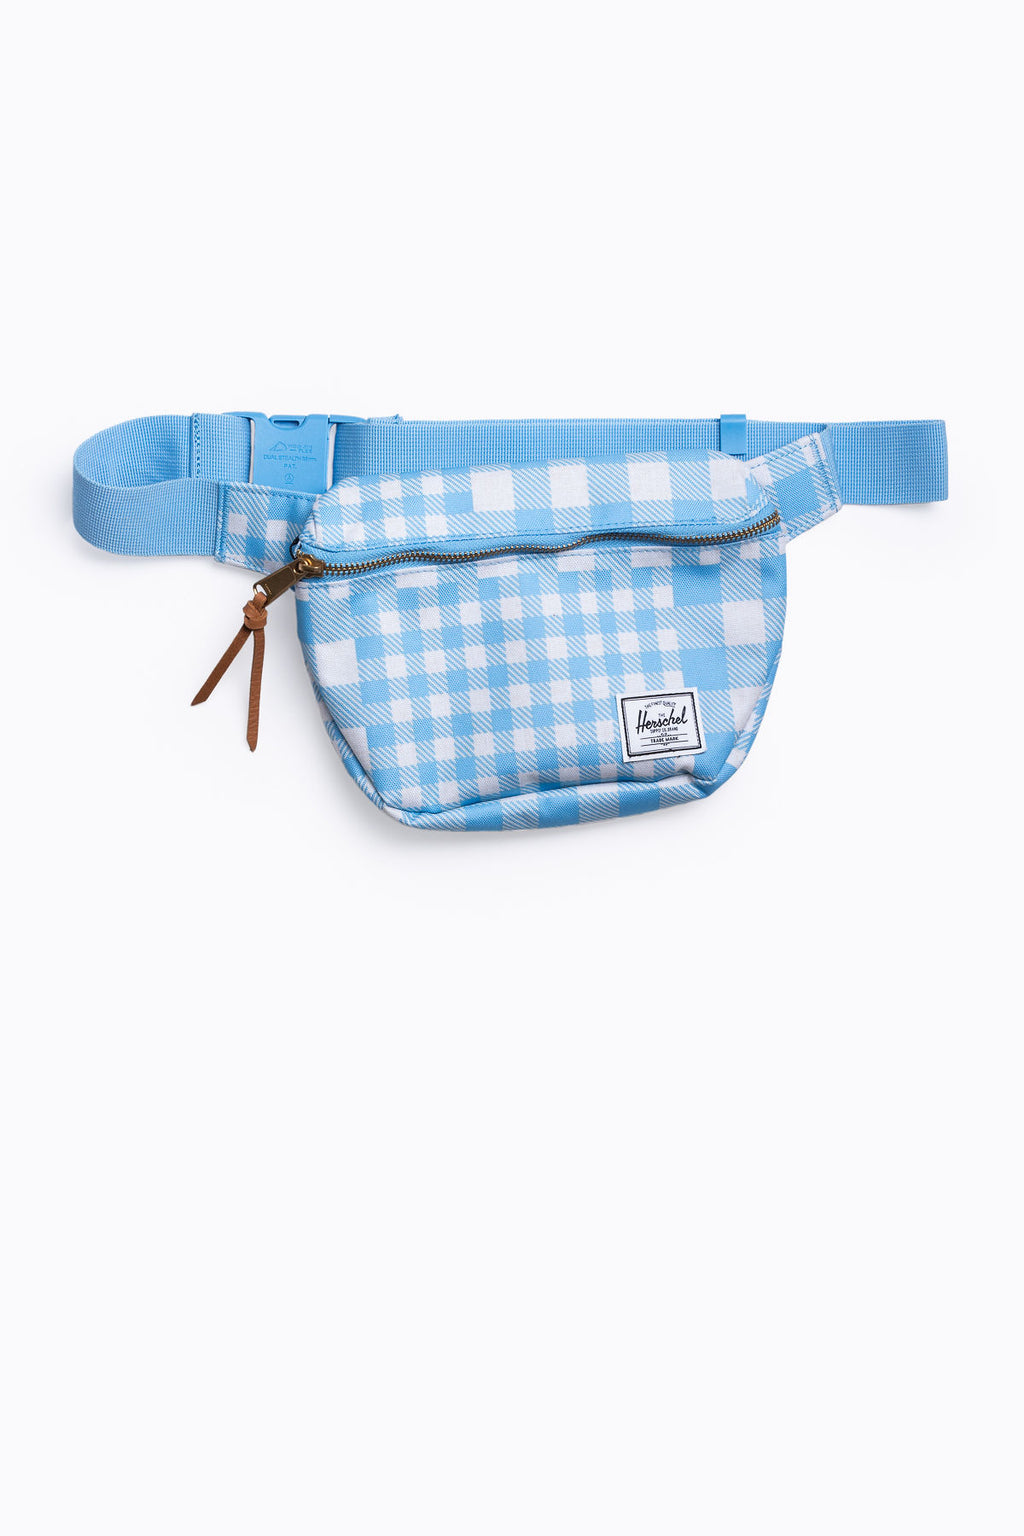 Herschel: Fifteen Hip Pack in Gingham Alaskan Blue